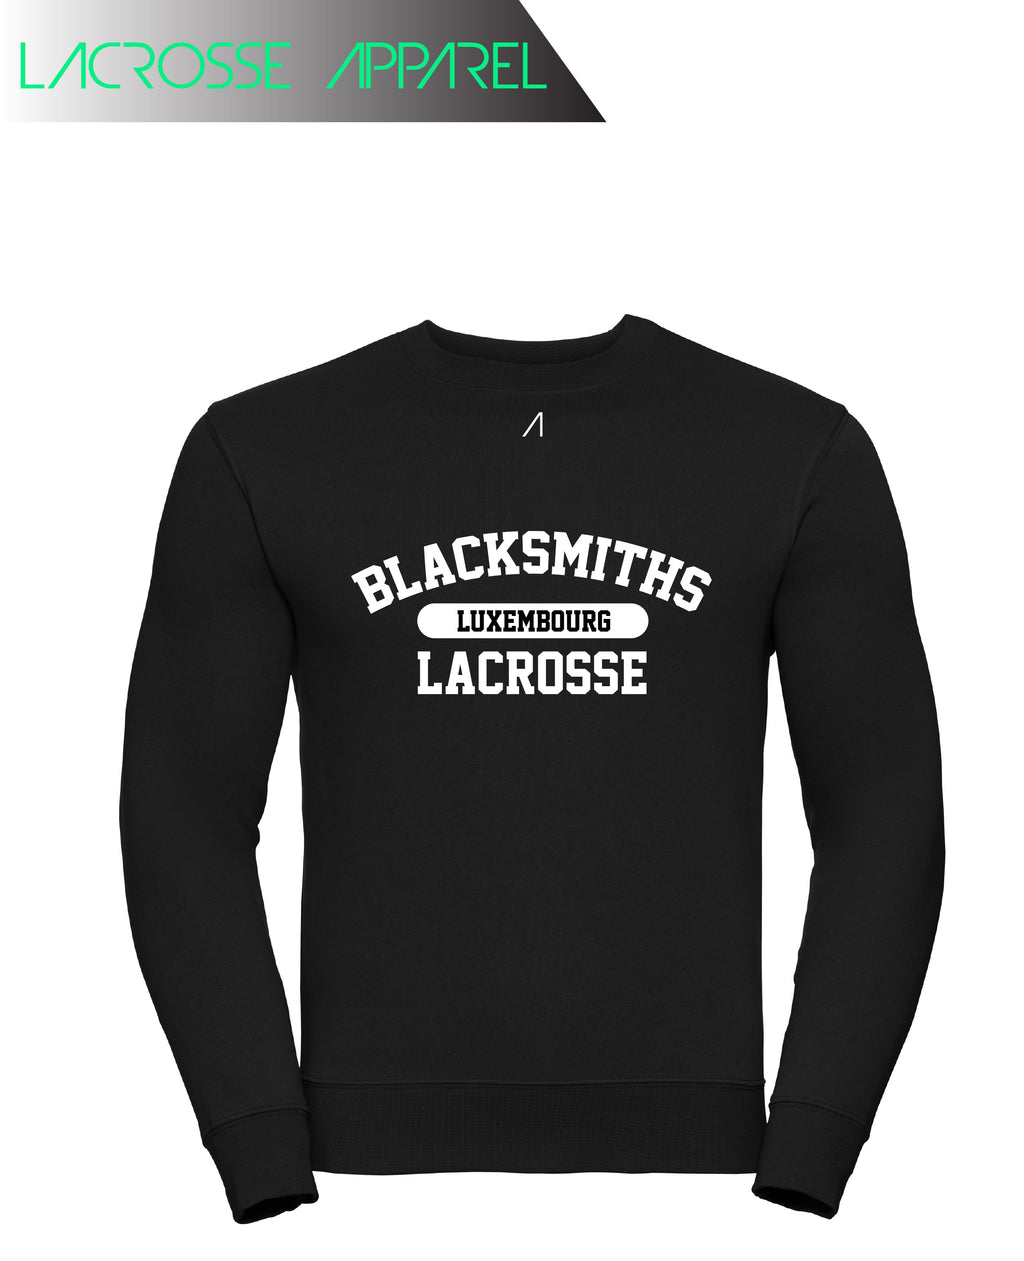 Luxembourg Blacksmiths Retro print sweatshirt